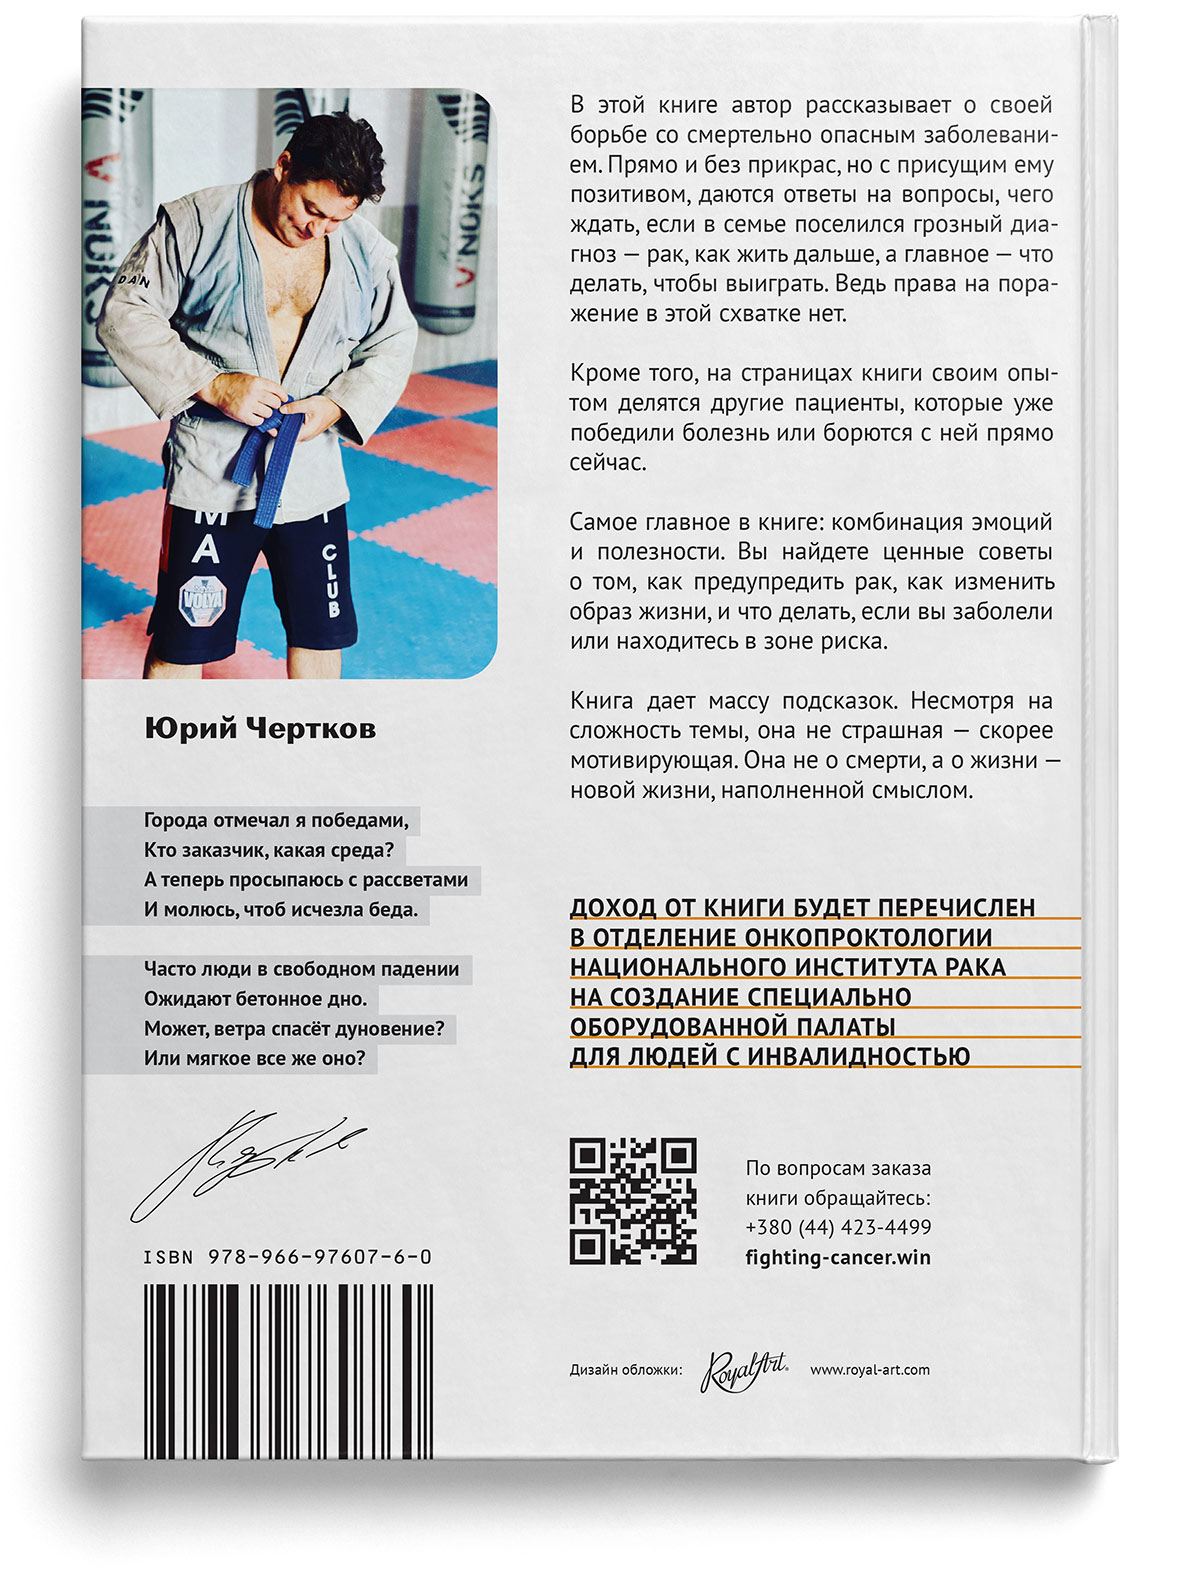 Book cover design. A book on fighting cancer. Yuri Chertkov. On the Watch! Fight against Cancer without the Right to Defeat.